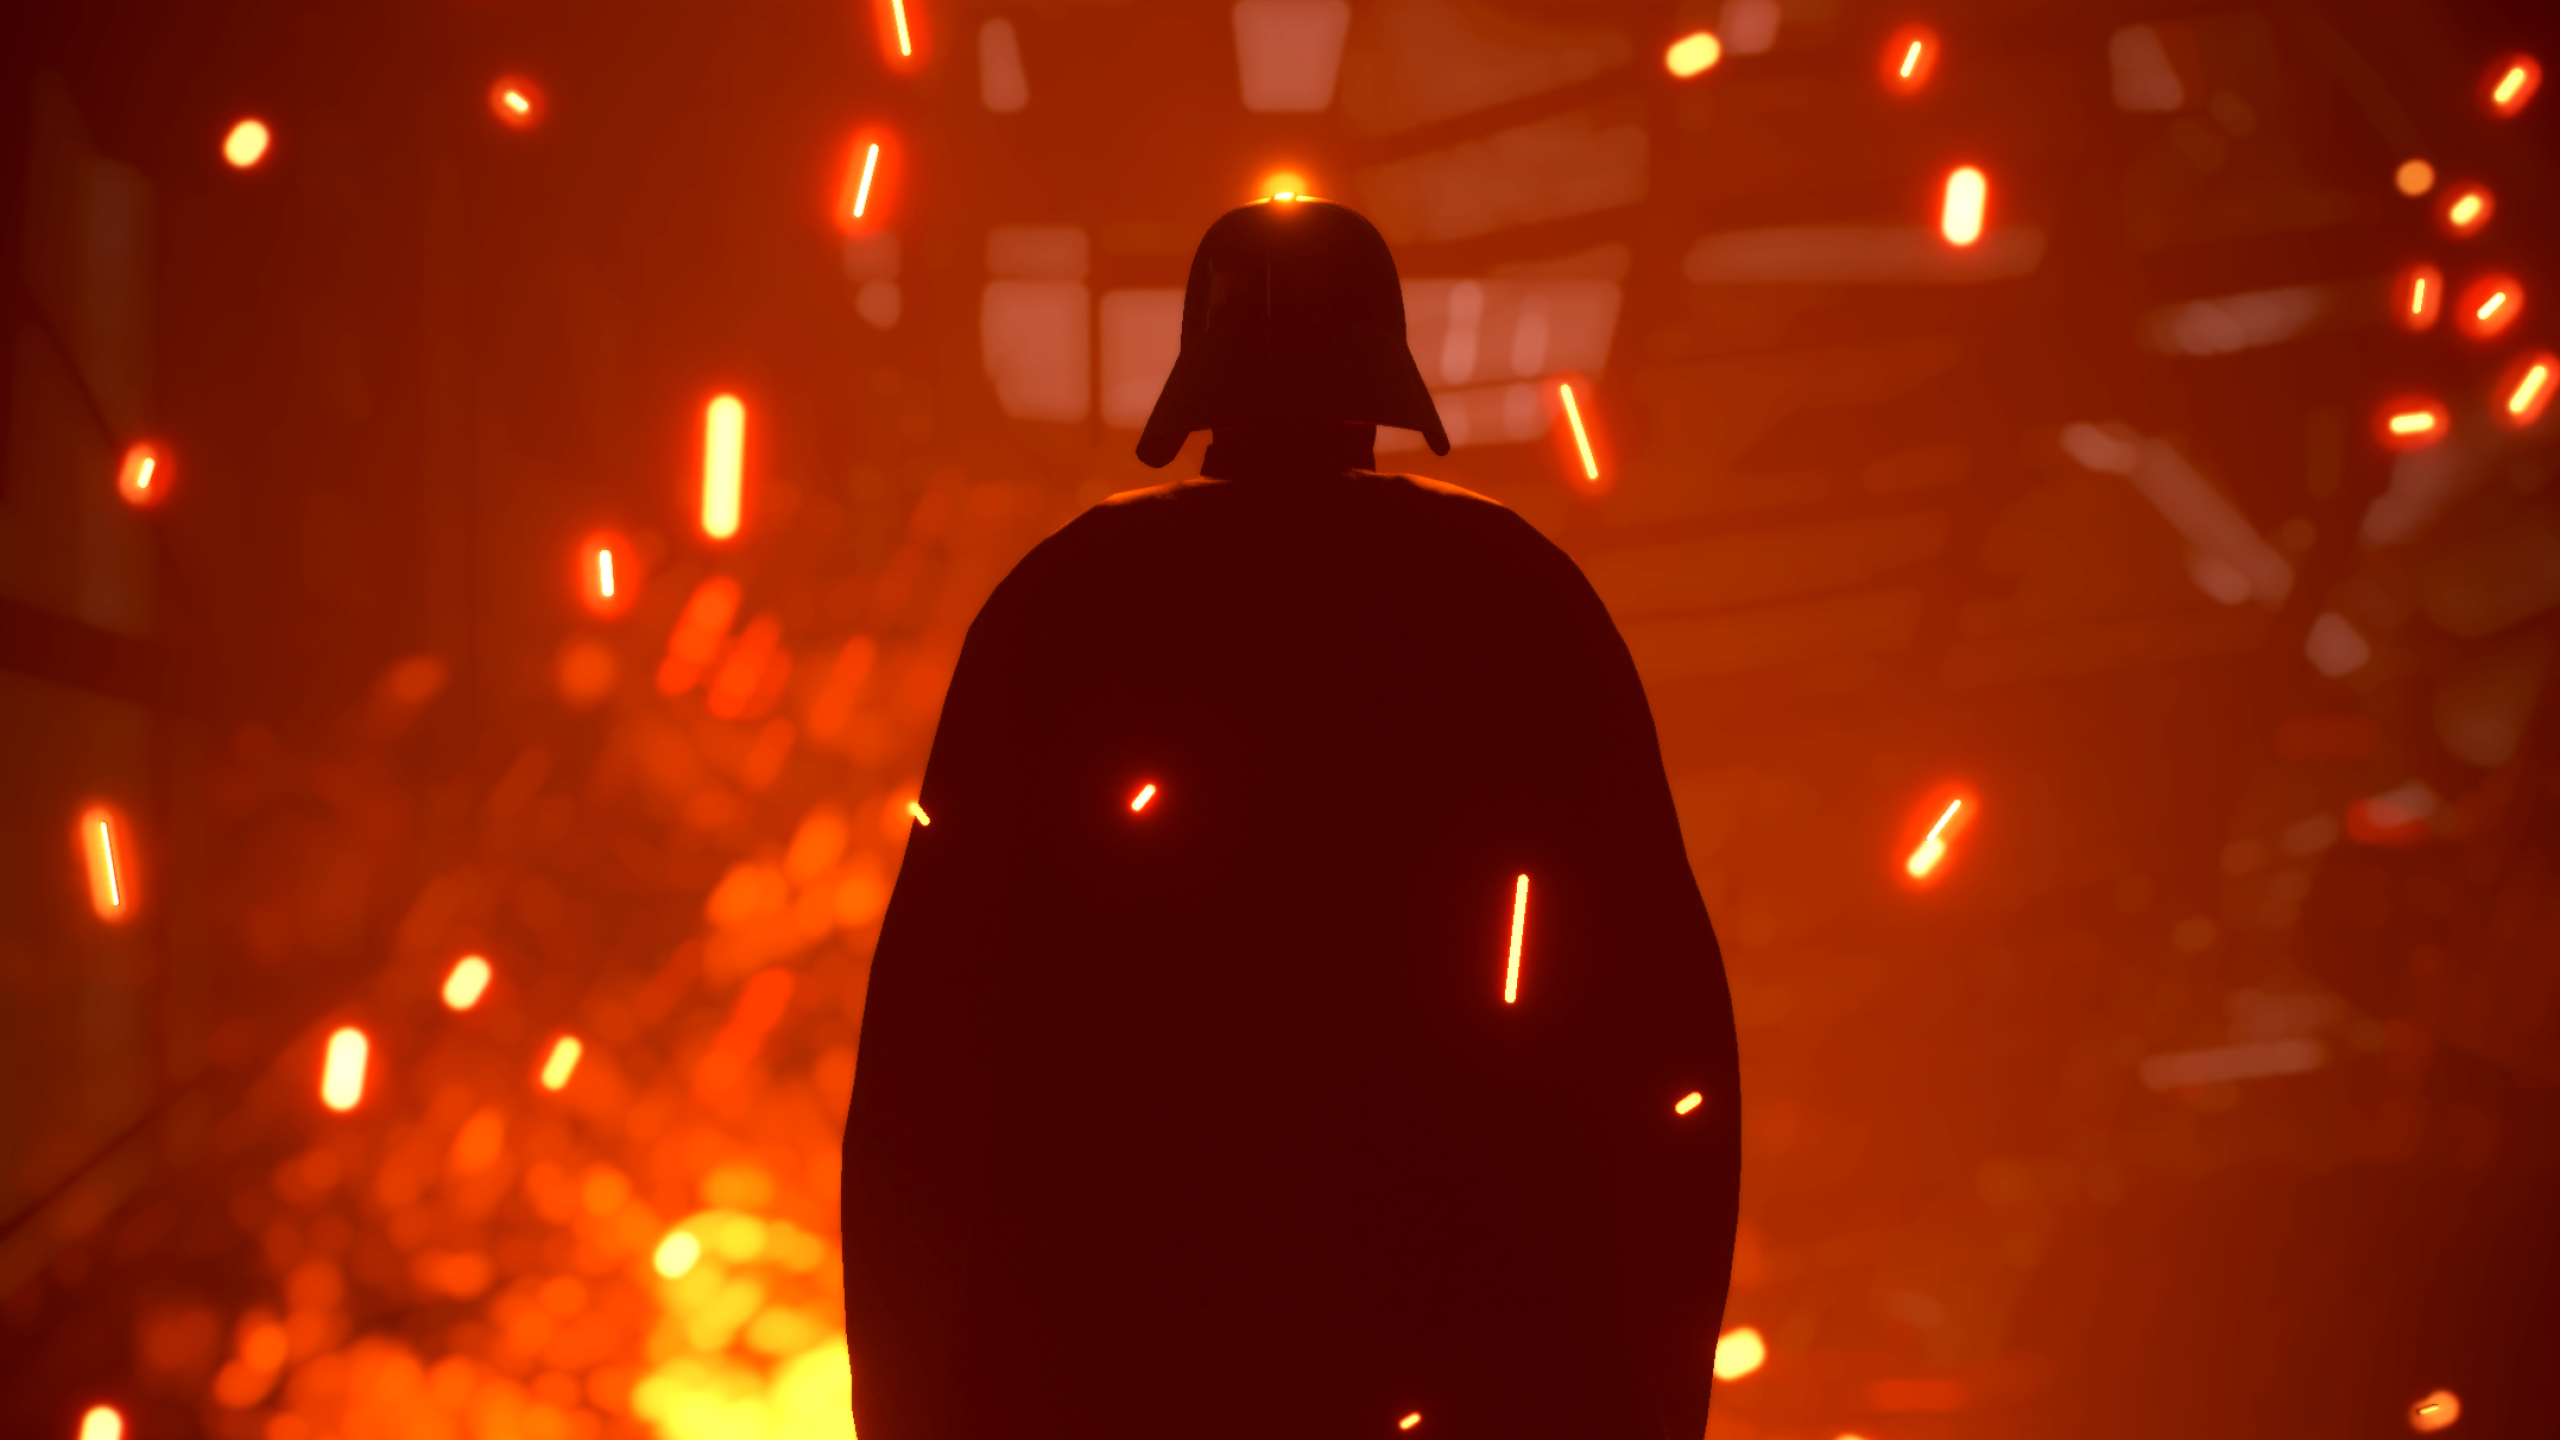 2560x1440 Darth Vader 1440p Resolution Wallpaper Hd Movies 4k Wallpapers Images Photos And Background